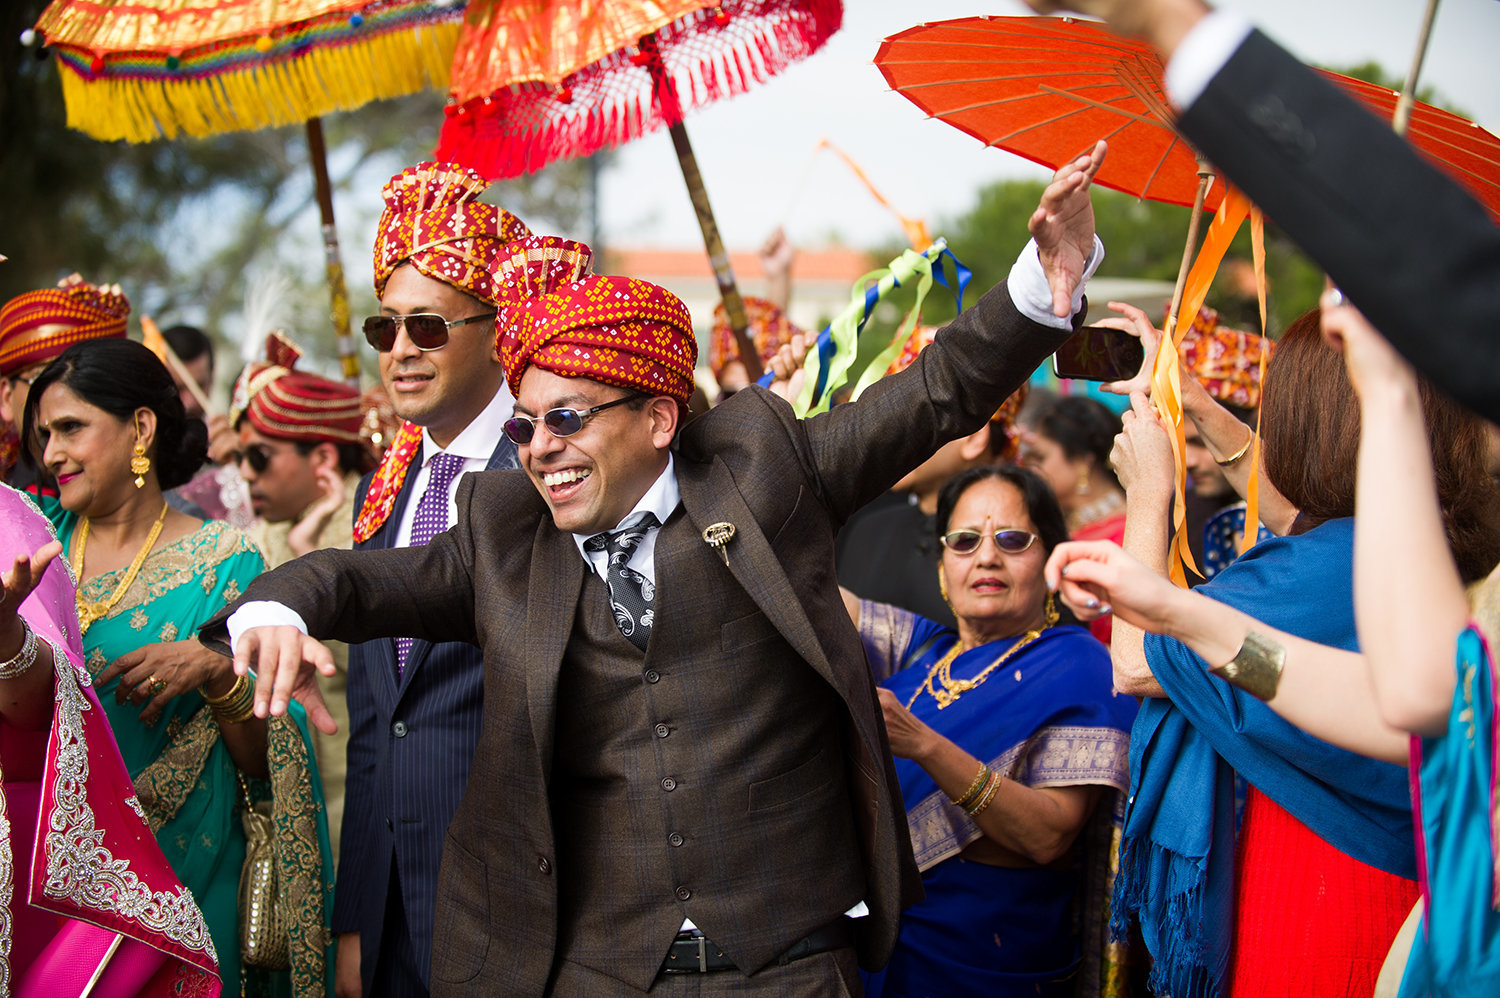 Family of the groom celebrates during the Baraat